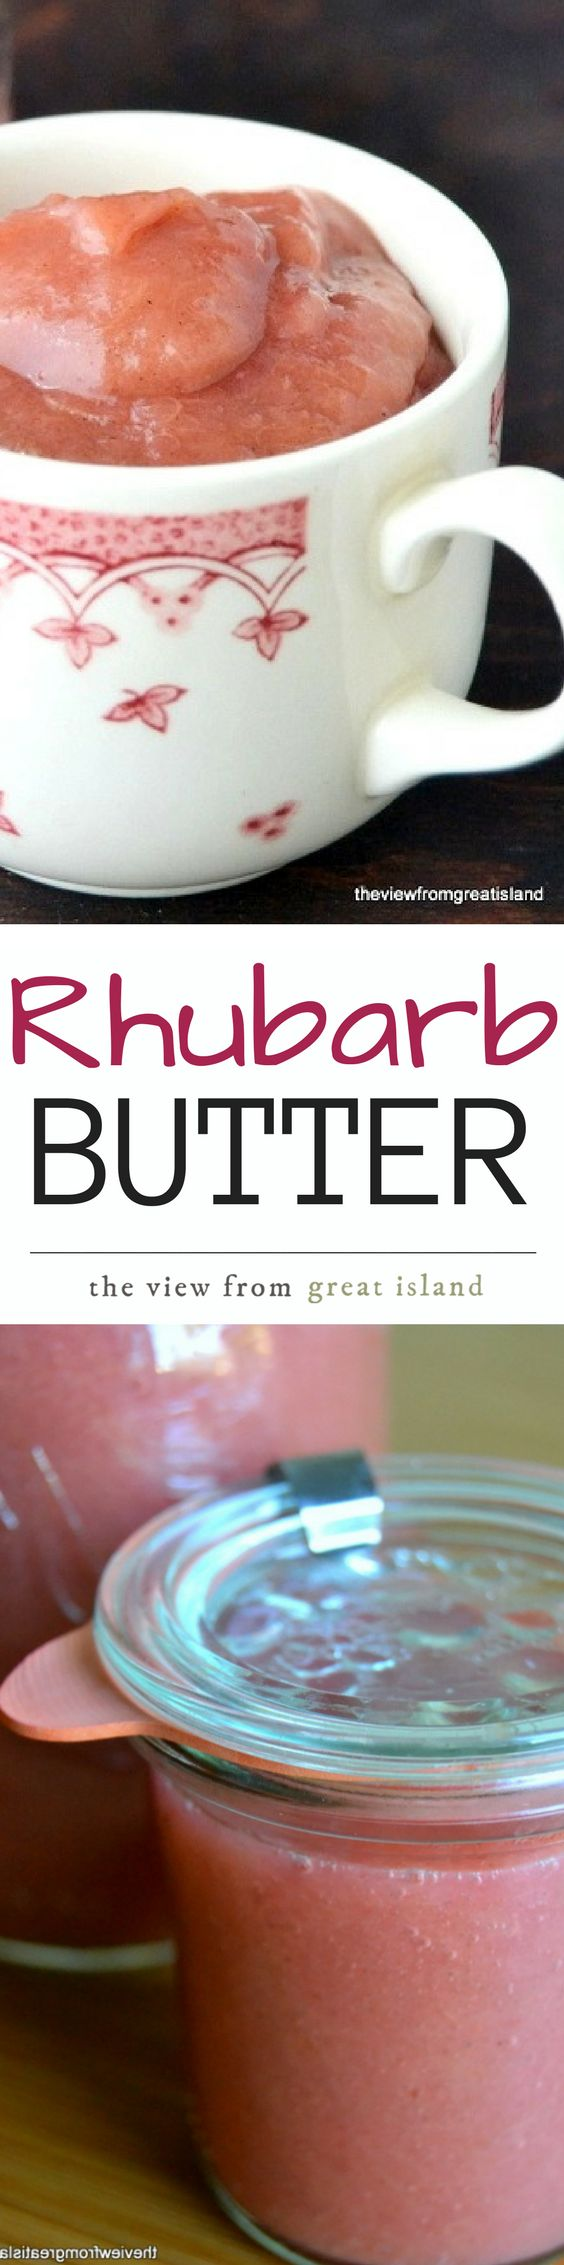 At the first sighting of fresh rhubarb every spring I make up a batch of my sweet/tangy Rhubarb Butter ~ spread it on toast, muffins, biscuits, or just eat it by the spoonful! (Lemon Butter Spread)